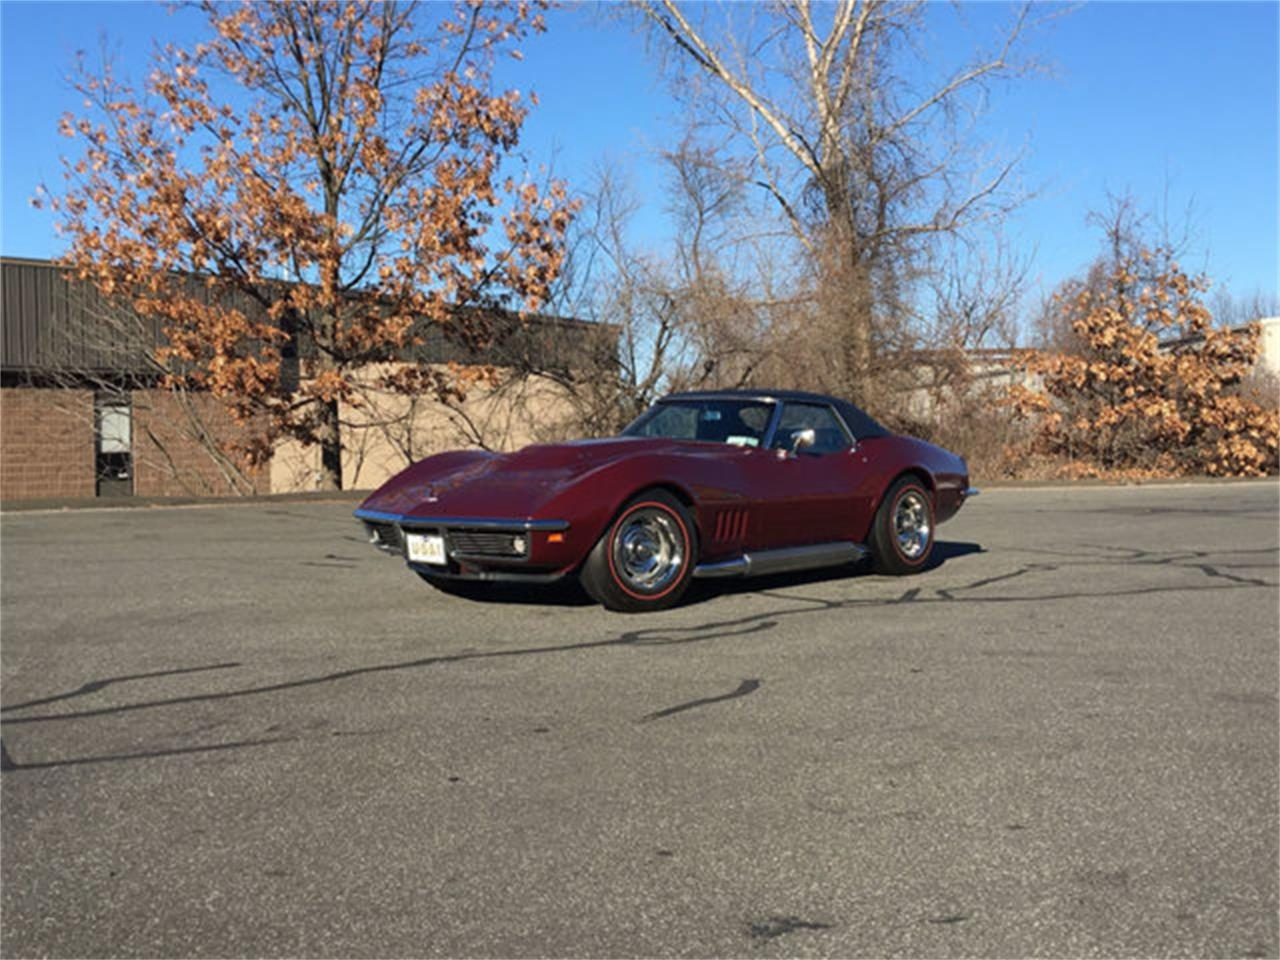 Large Picture of 1969 Corvette located in Wallingford Connecticut Auction Vehicle - LHVA